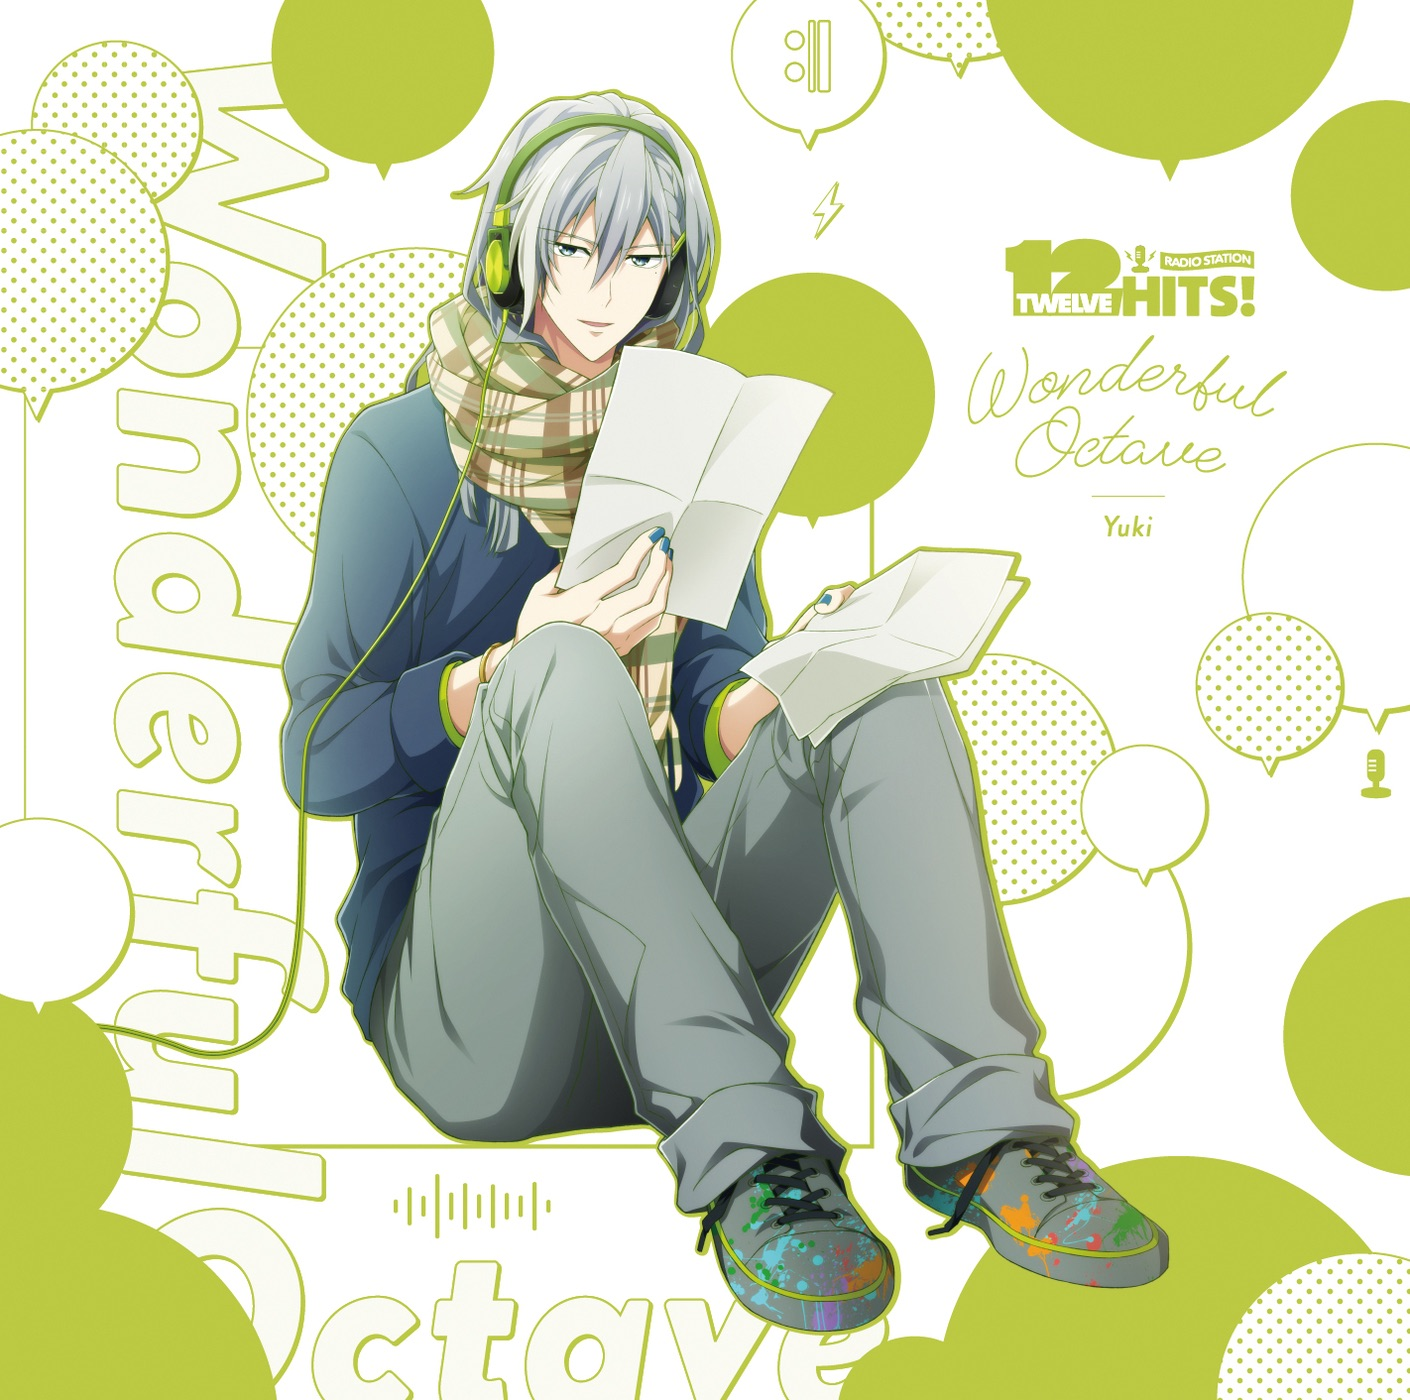 "IDOLiSH7: RADIO STATION ""Twelve Hits!"" Wonderful Octave Yuki (CV. Shinnosuke Tachibana) 千 (CV.立花慎之介)"